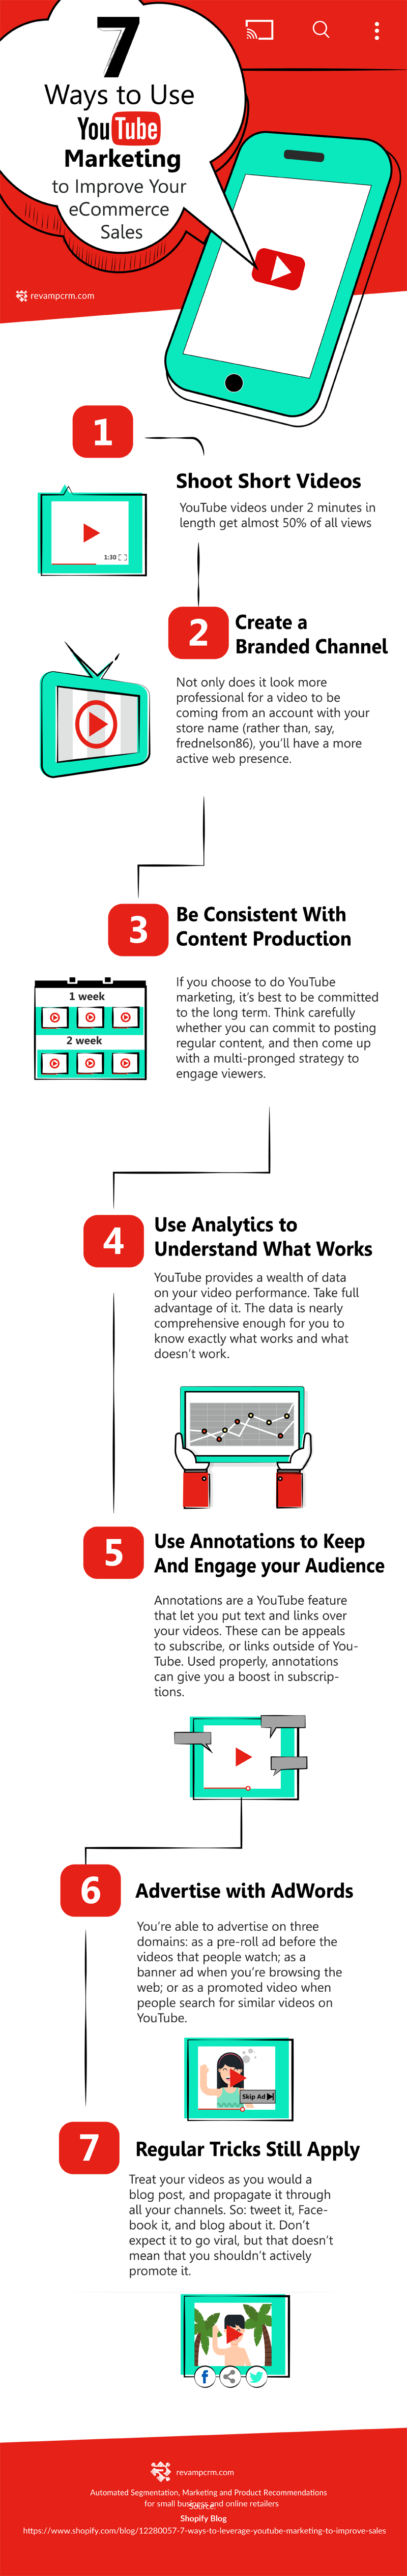 7 Ways to Use YouTube Marketing and Improve Your eCommerce Sales - #infographic